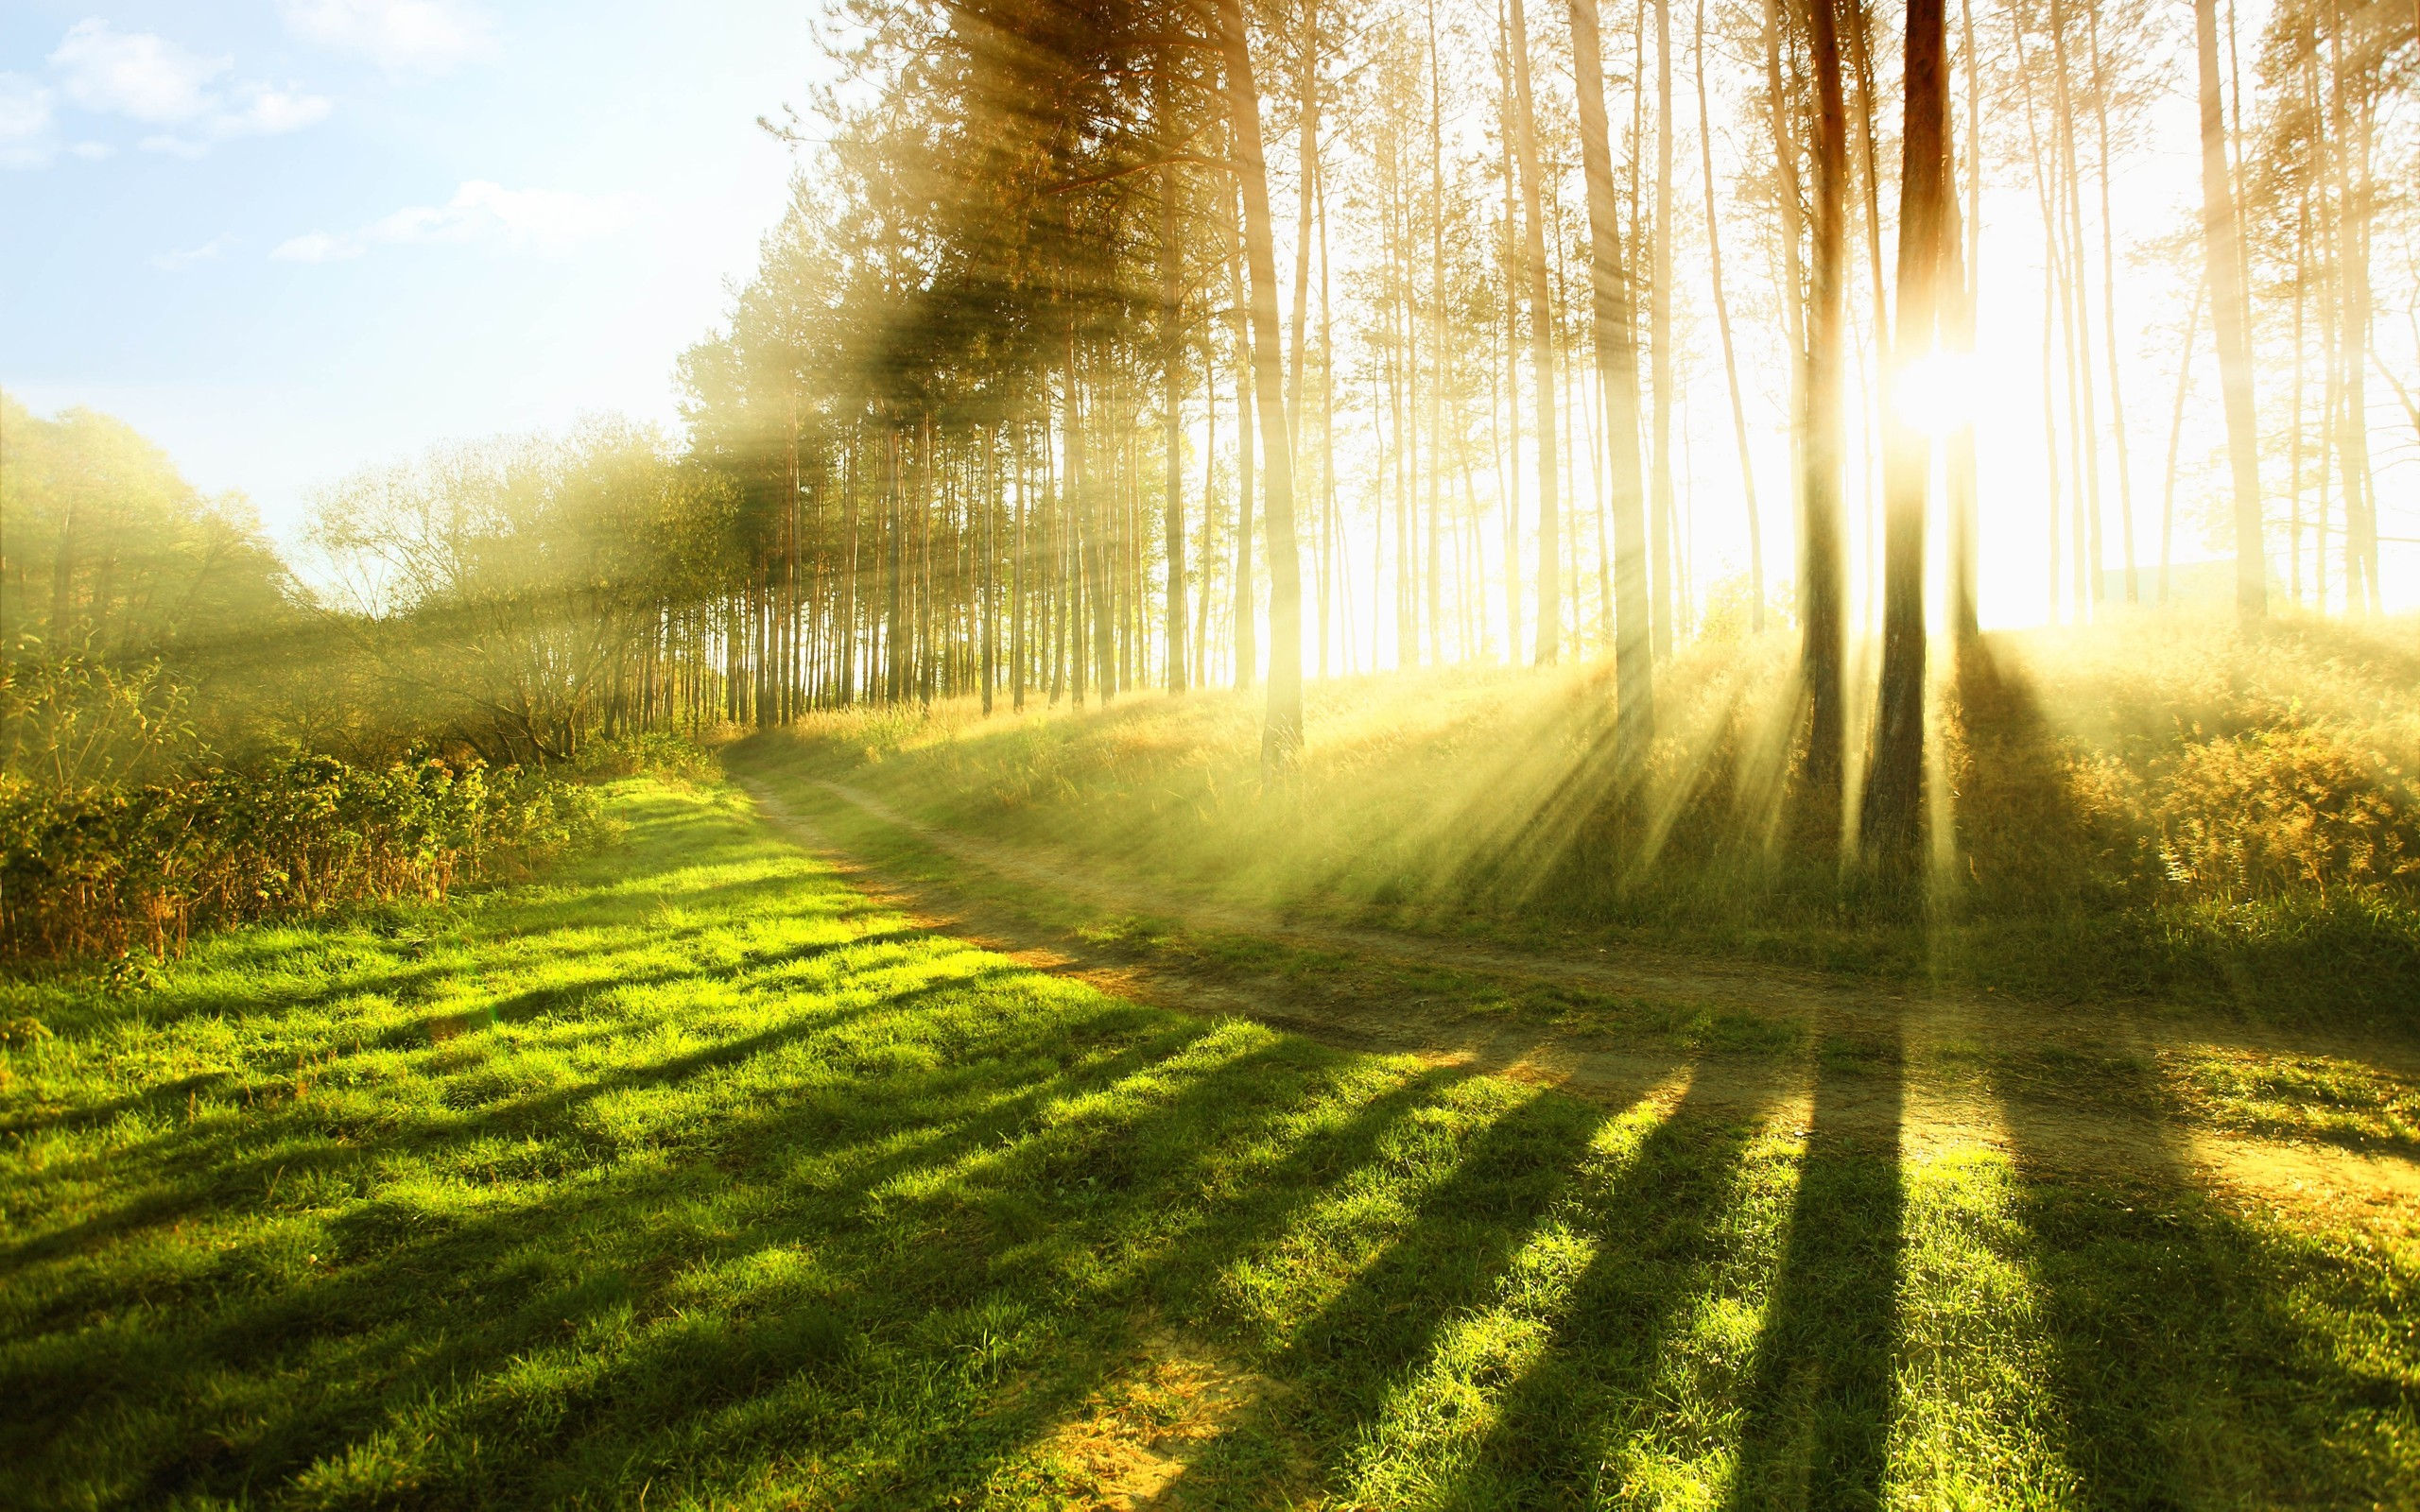 XHS71: Nature, 1317.6 Kb, by Laurie Mcmiller #2180283